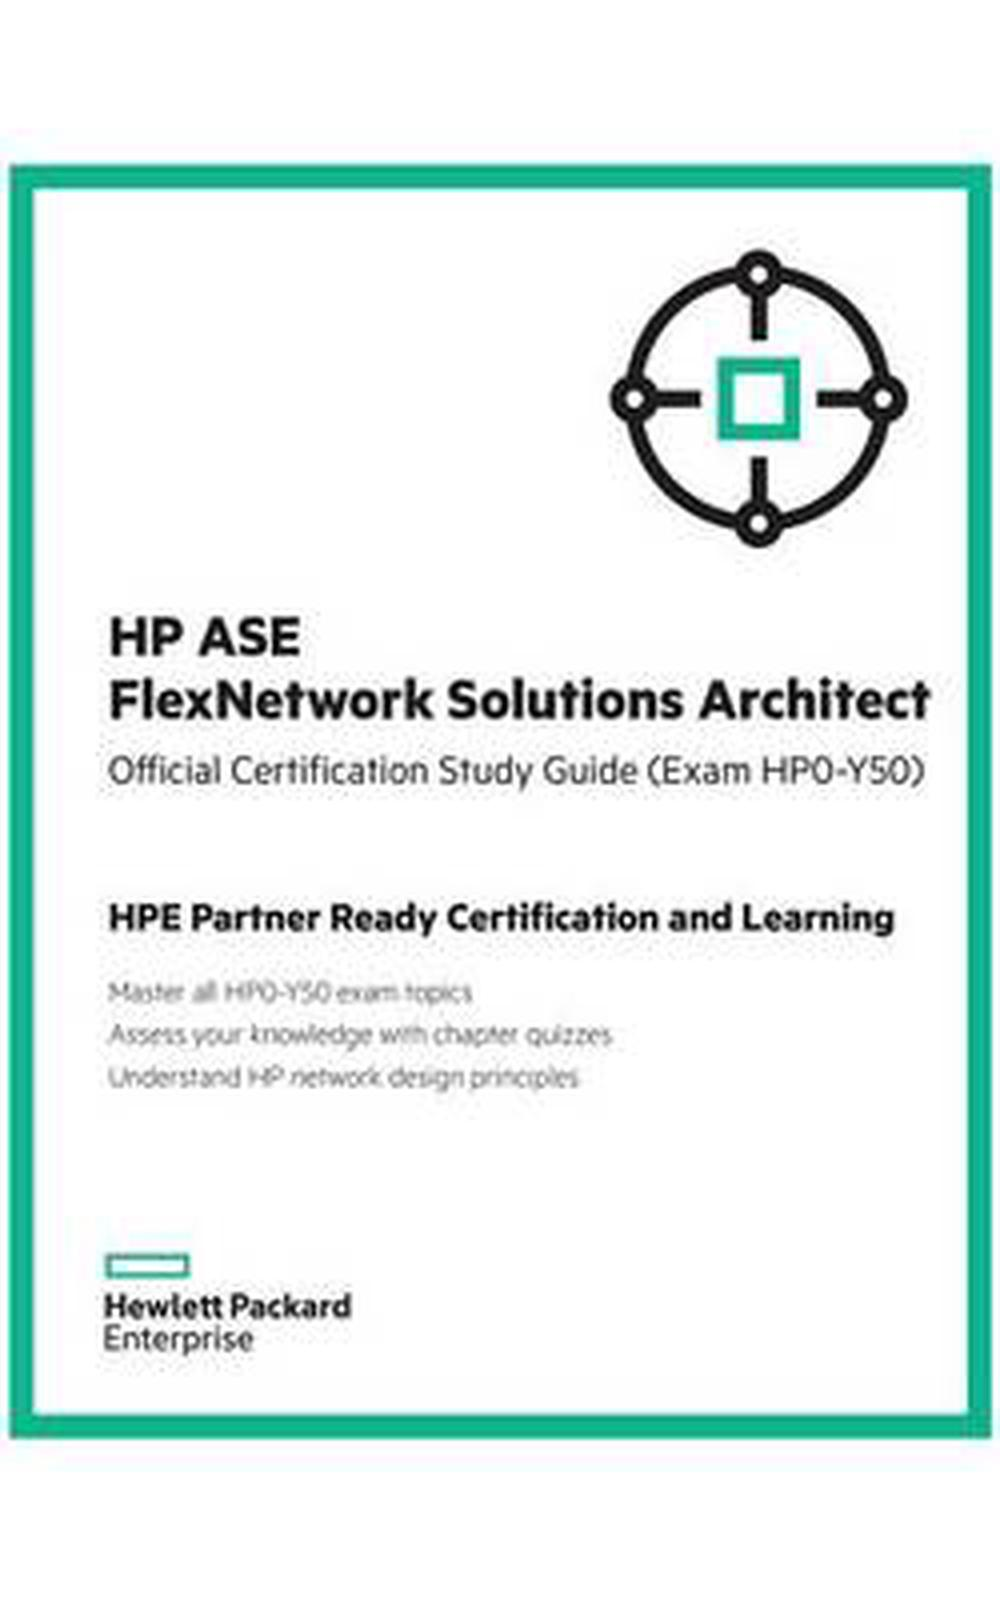 Hp Ase Flexnetwork Solutions Architect Official Certification Study